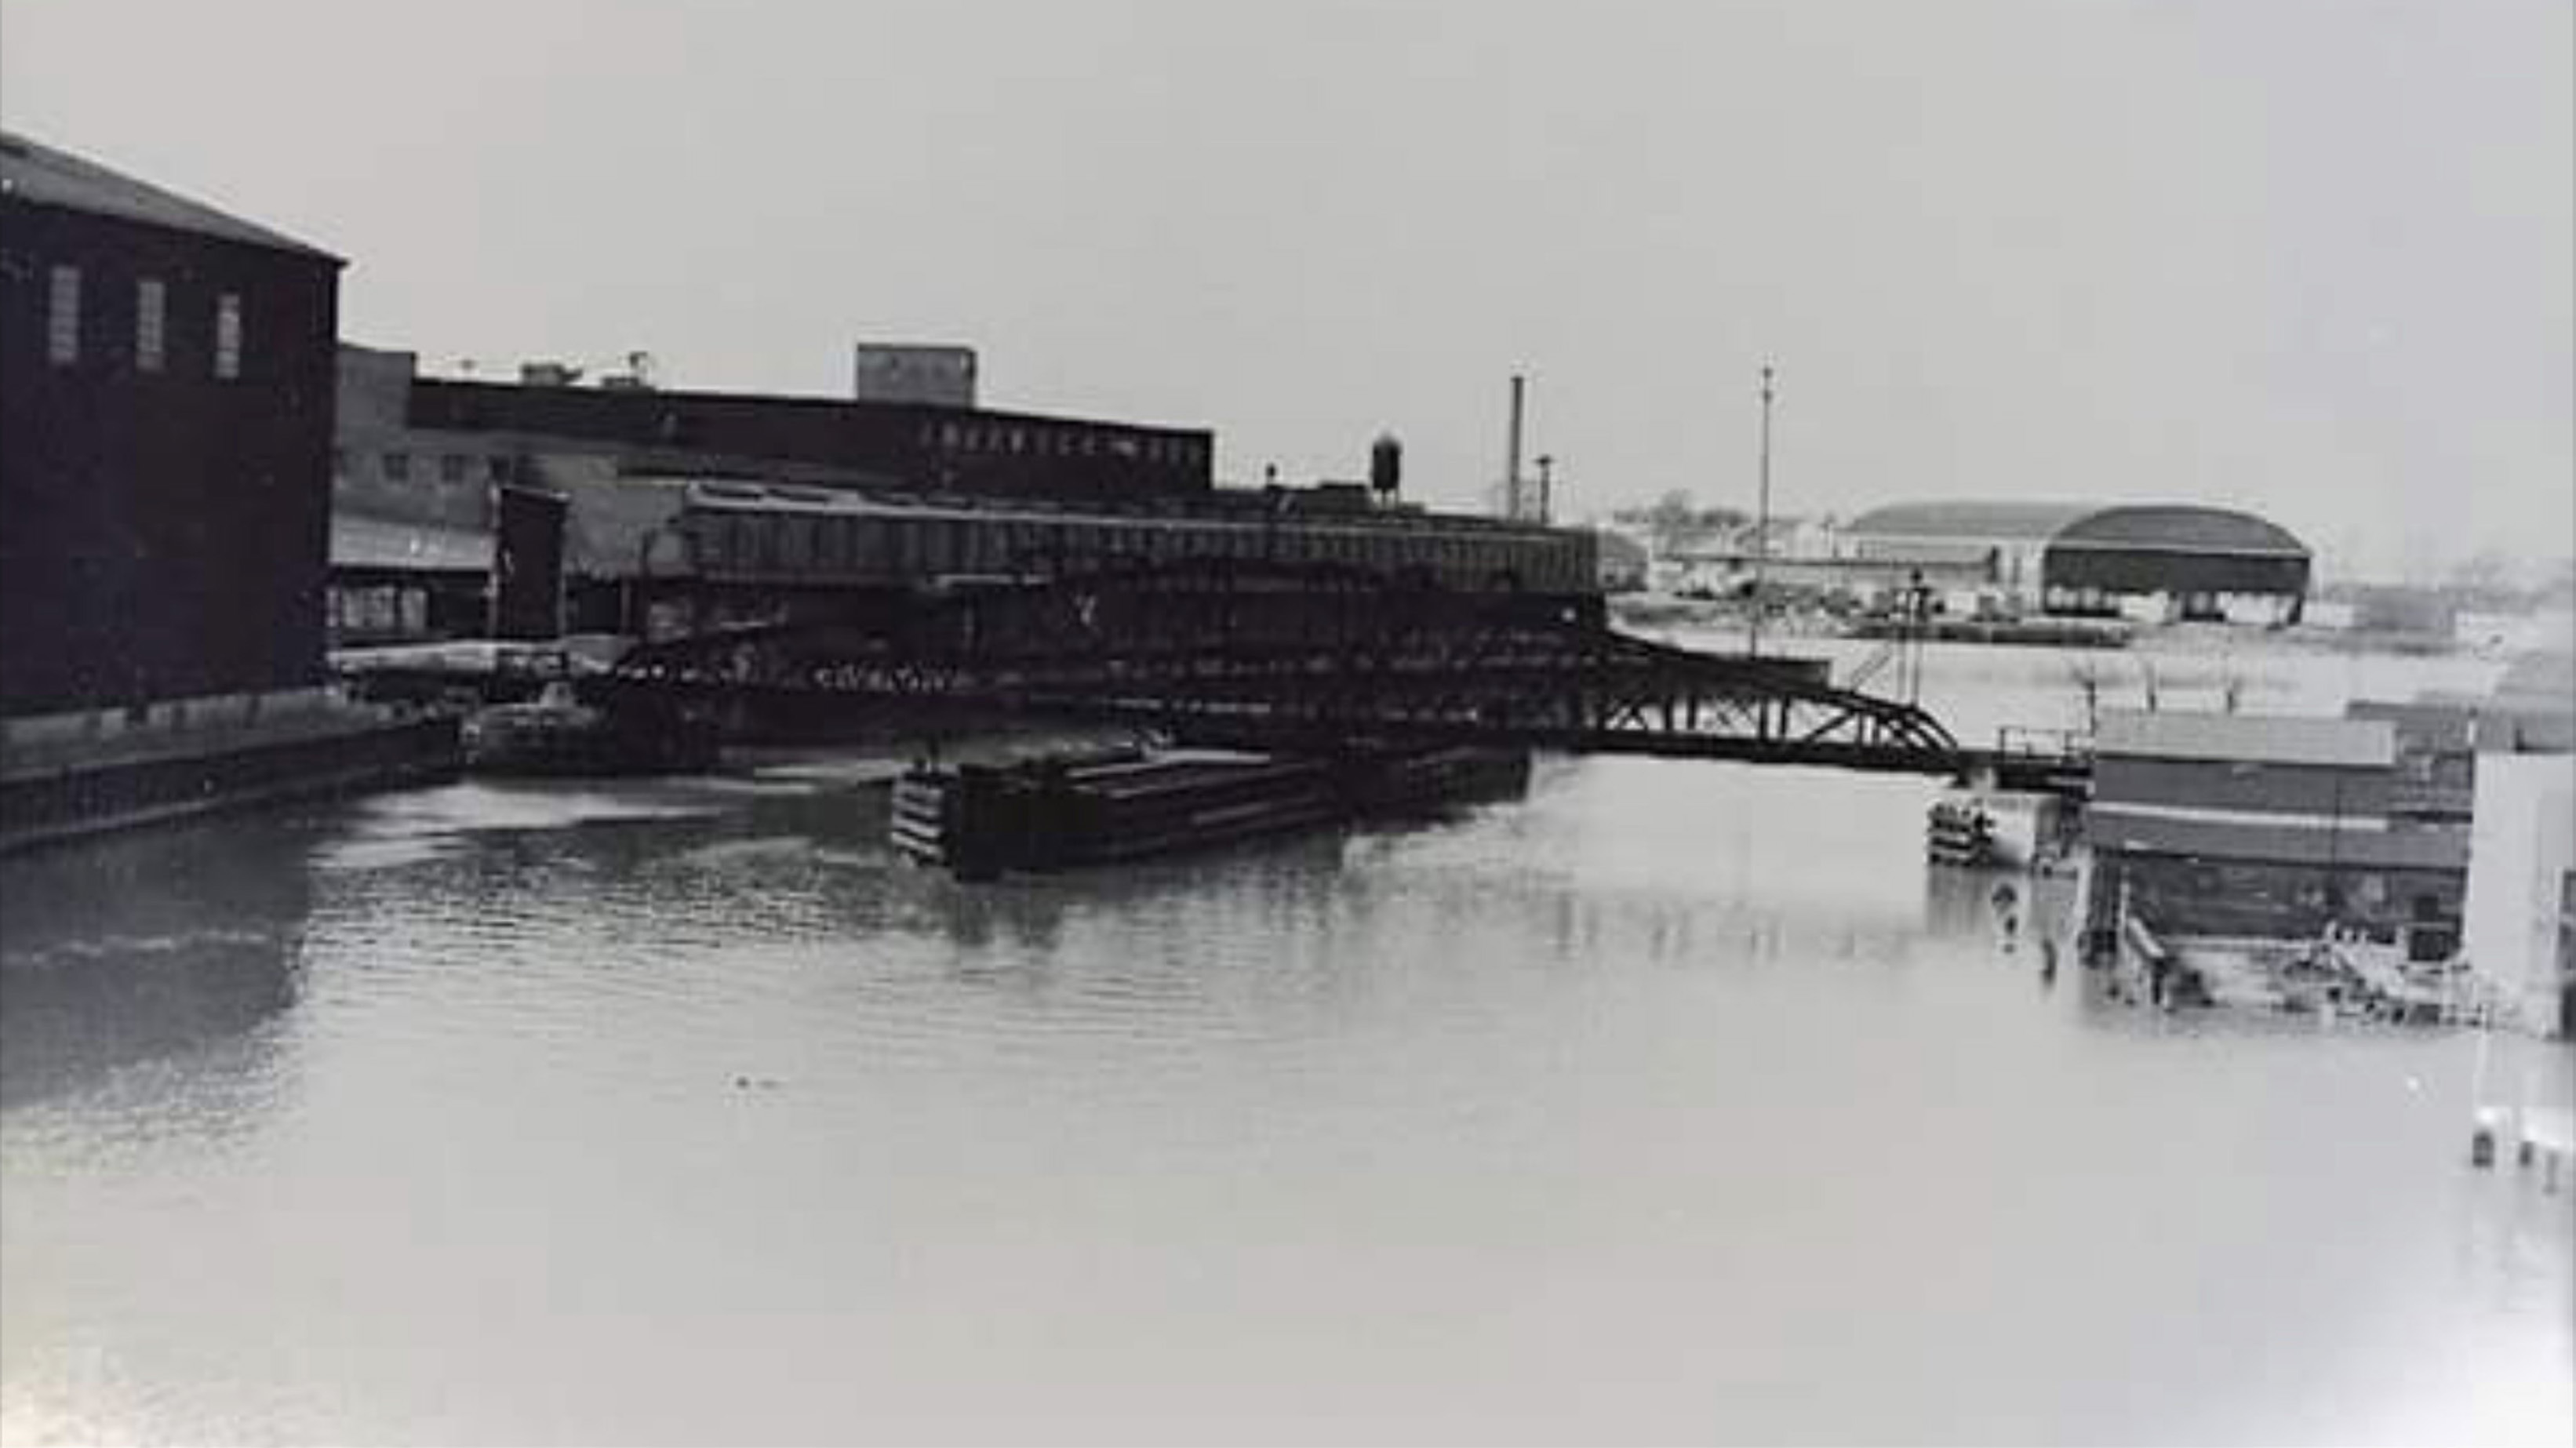 South swing bridge in operation (c1950).jpg